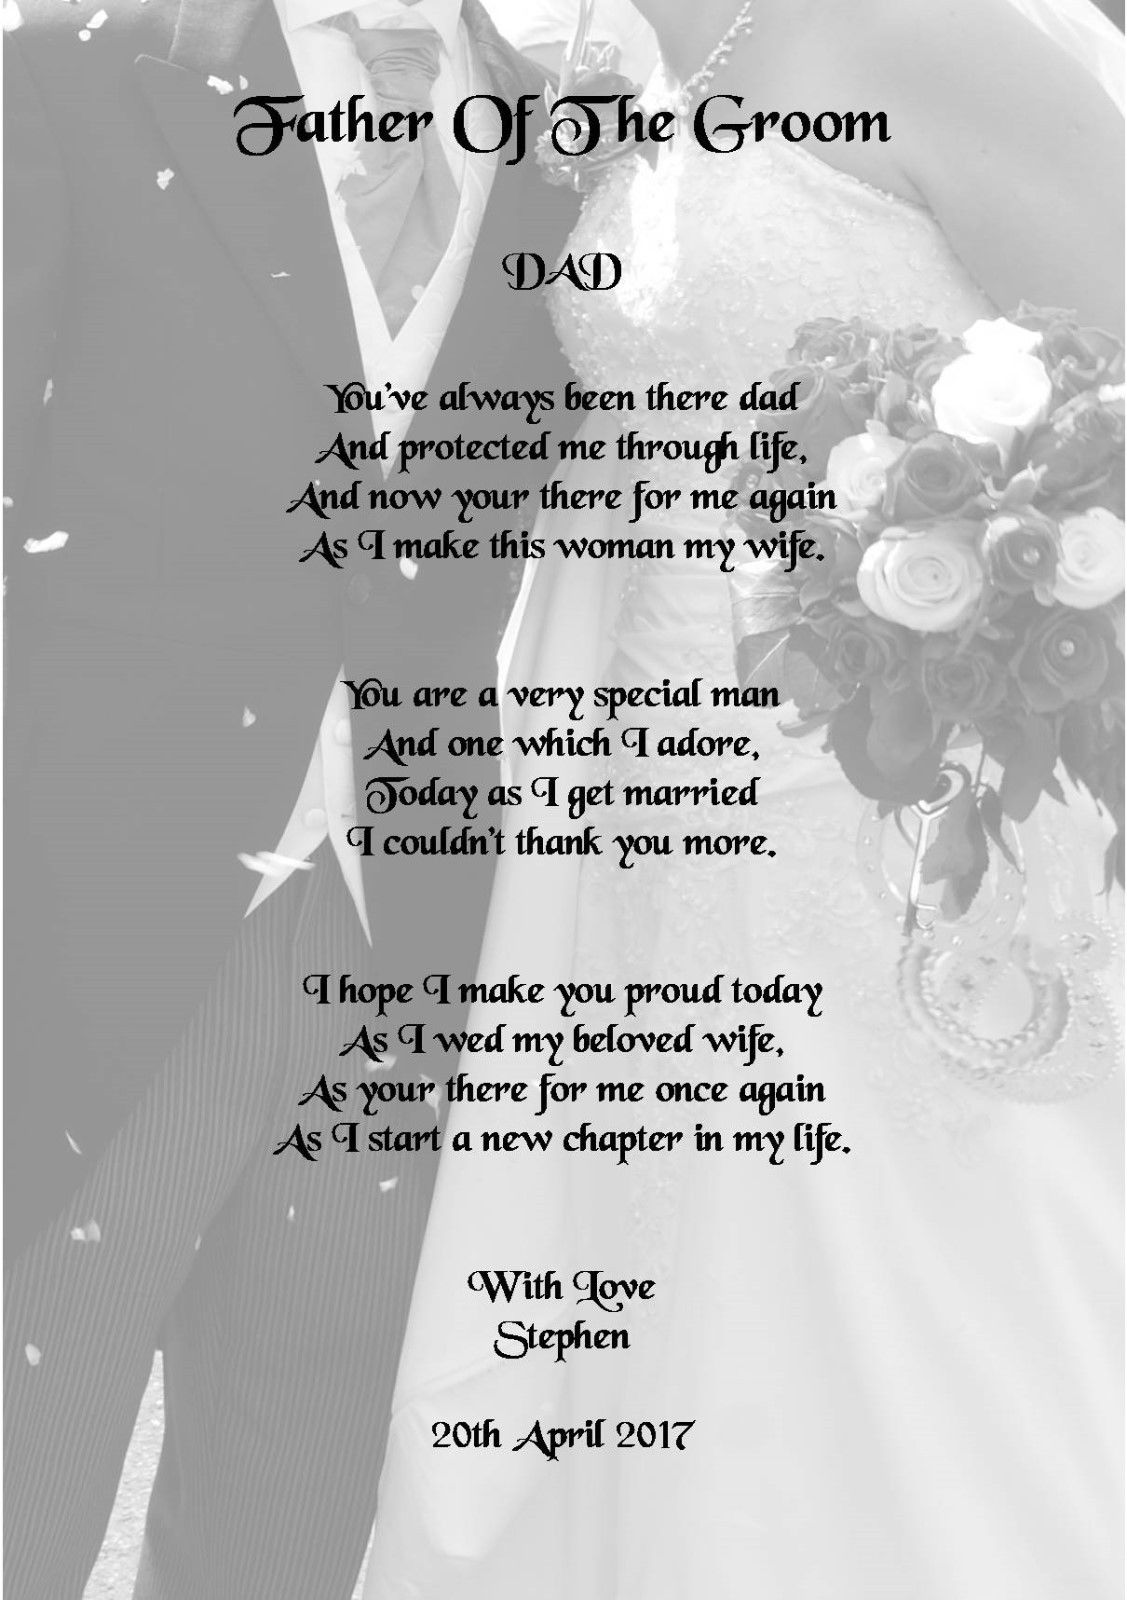 Wedding day thank you gift father of the groom poem a photo ebay